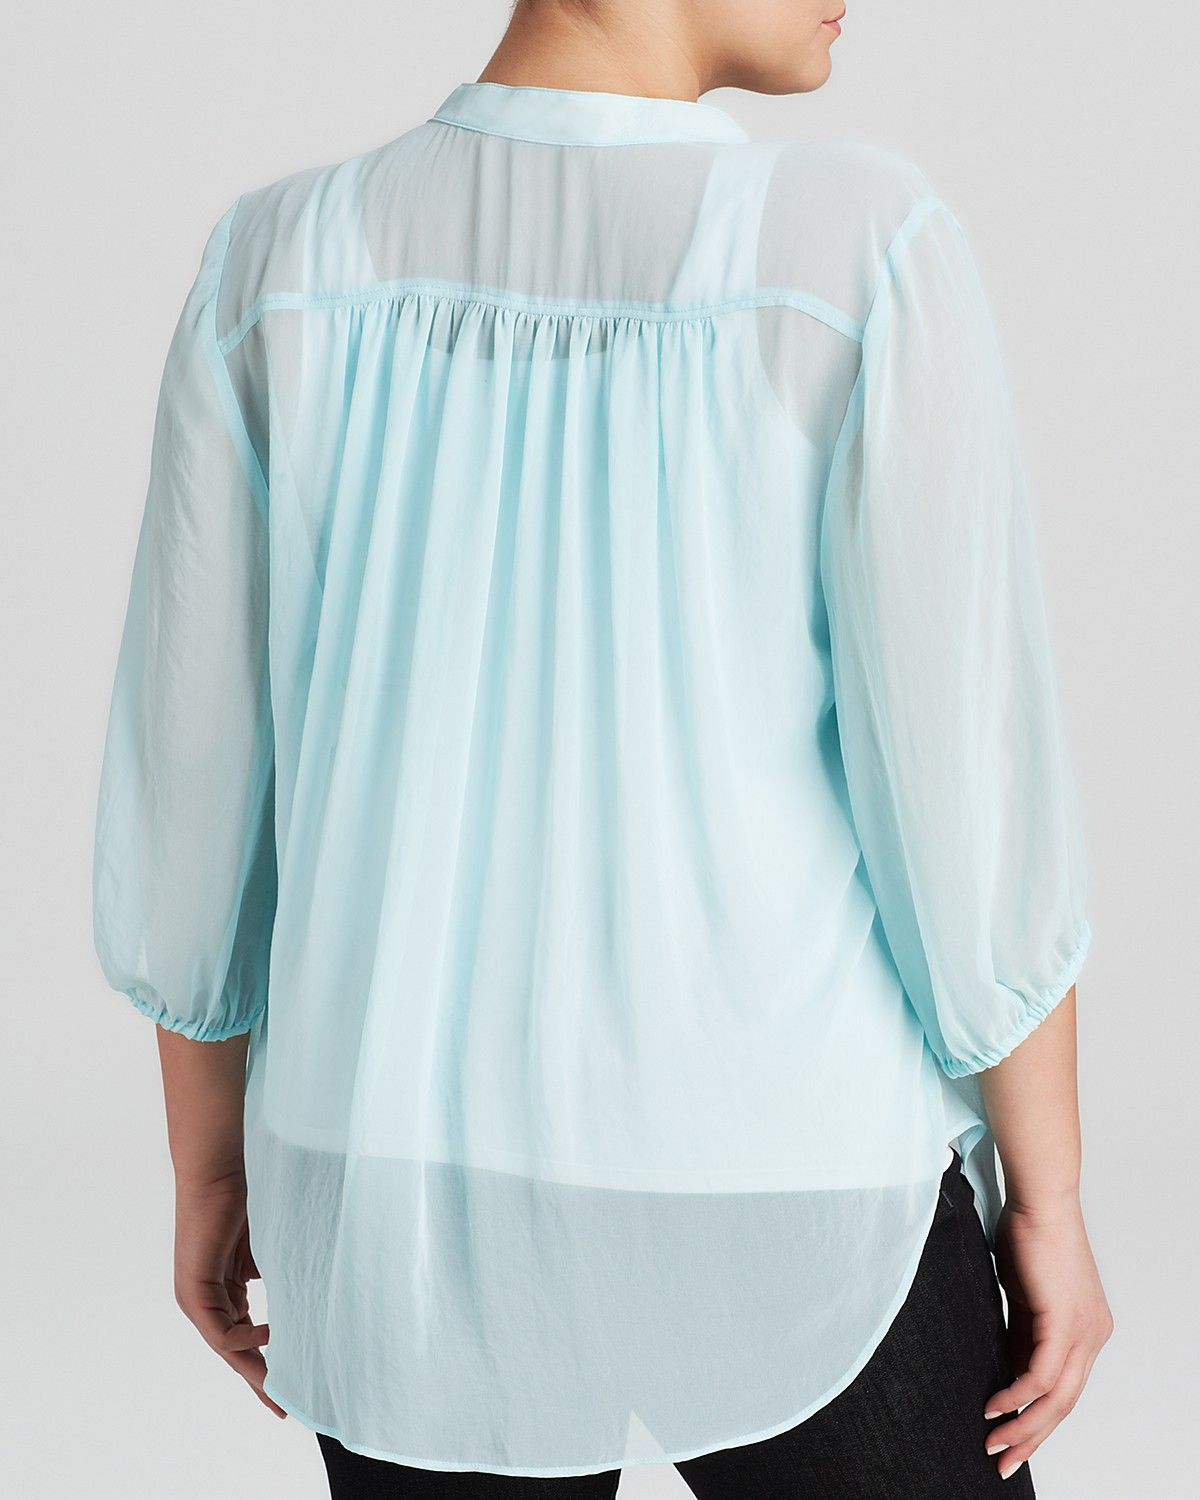 Karen Kane Plus Size Aqua Blue Shirred Blouse | Bloomingdale's  #Karen_Kane #Plus_Size #Aqua #Blue #Shirred #Blouse #Top #Plus #Size #Womens #Fashion #KarenKane #Plus_Size_Fashion #Bloomingdales